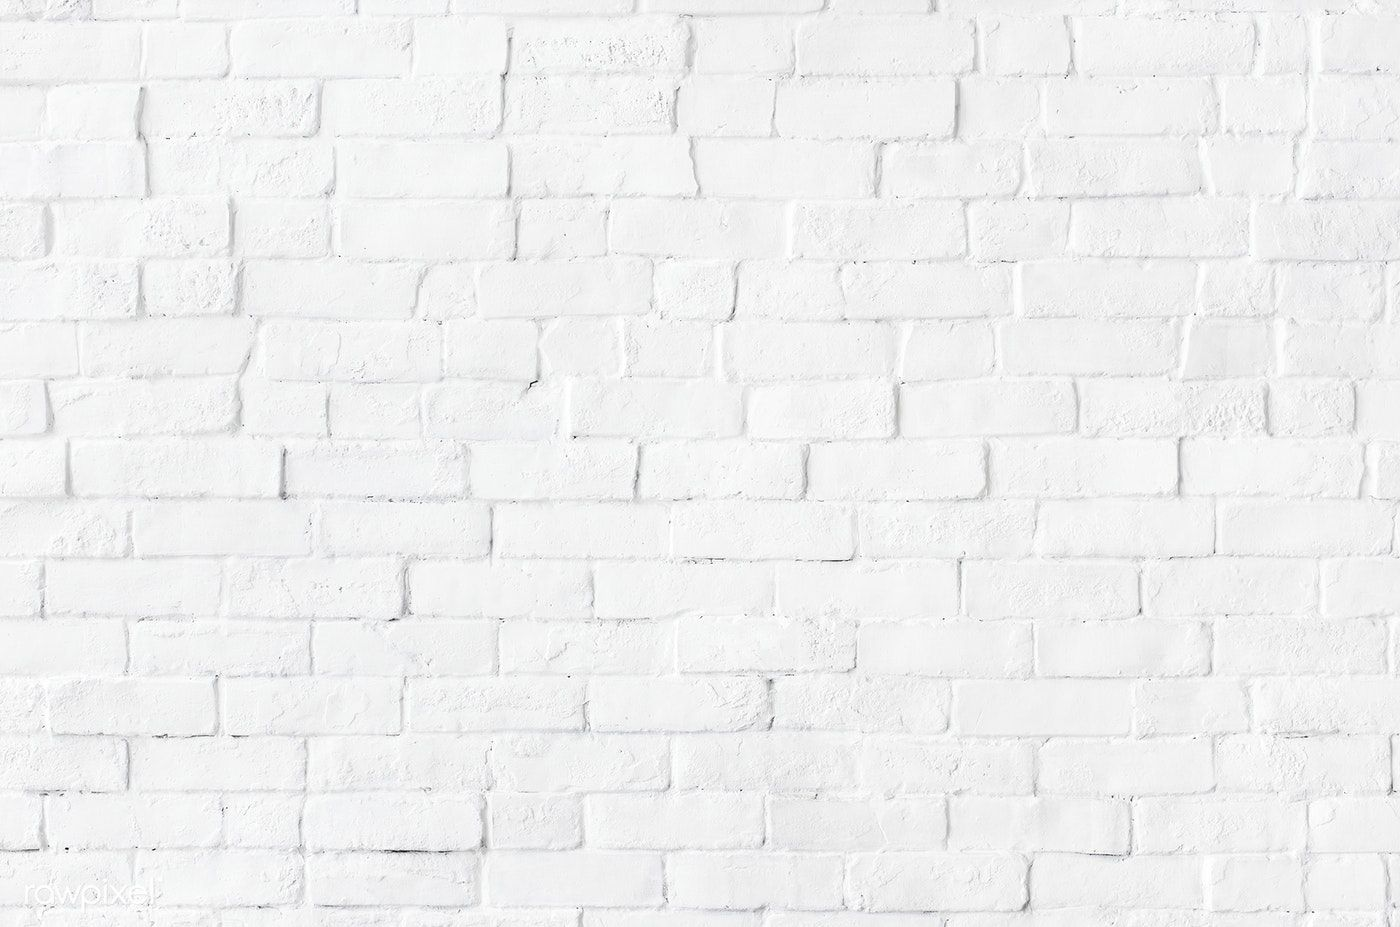 White brick wall textured background free image by